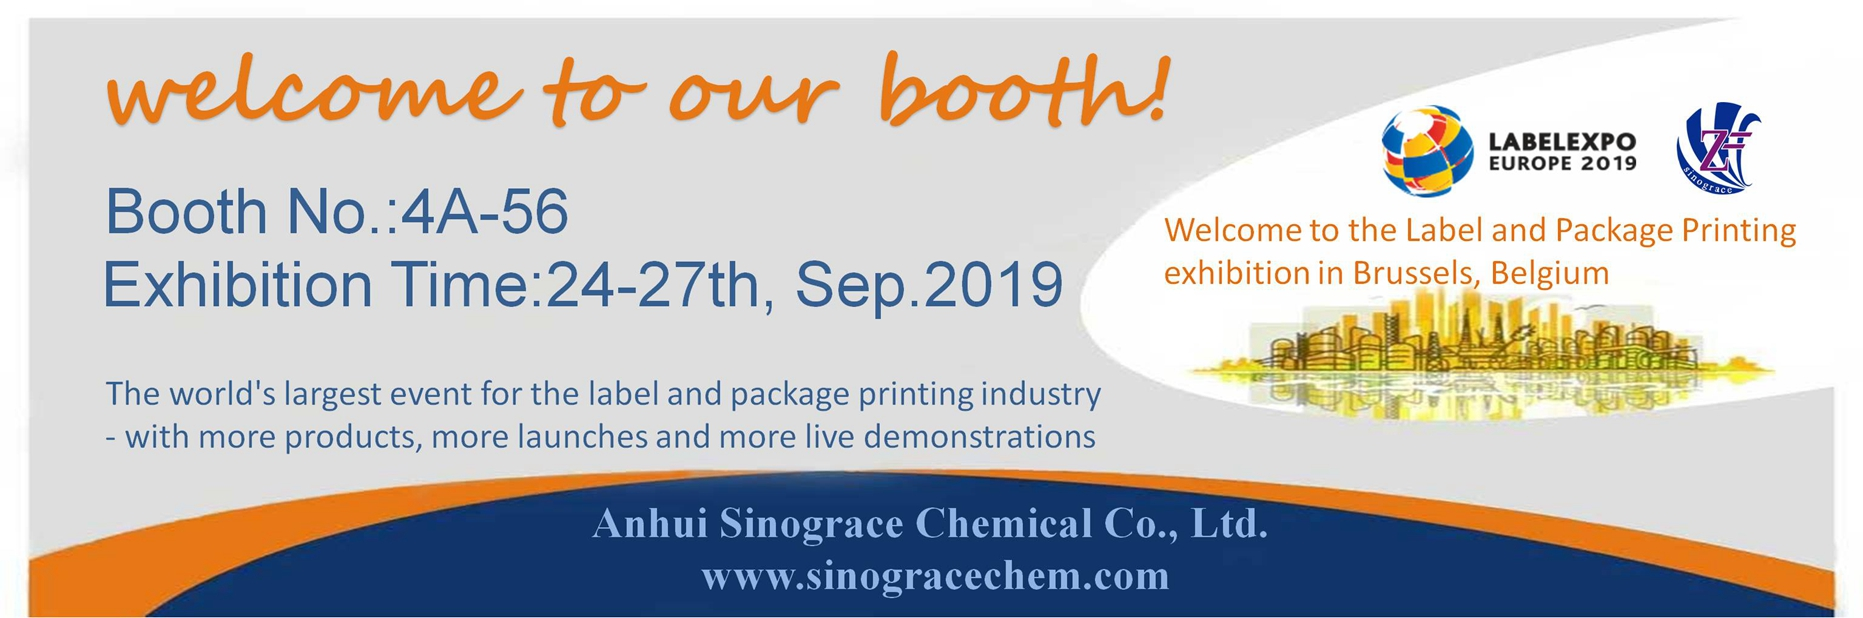 Label and  Package Printing exhibition